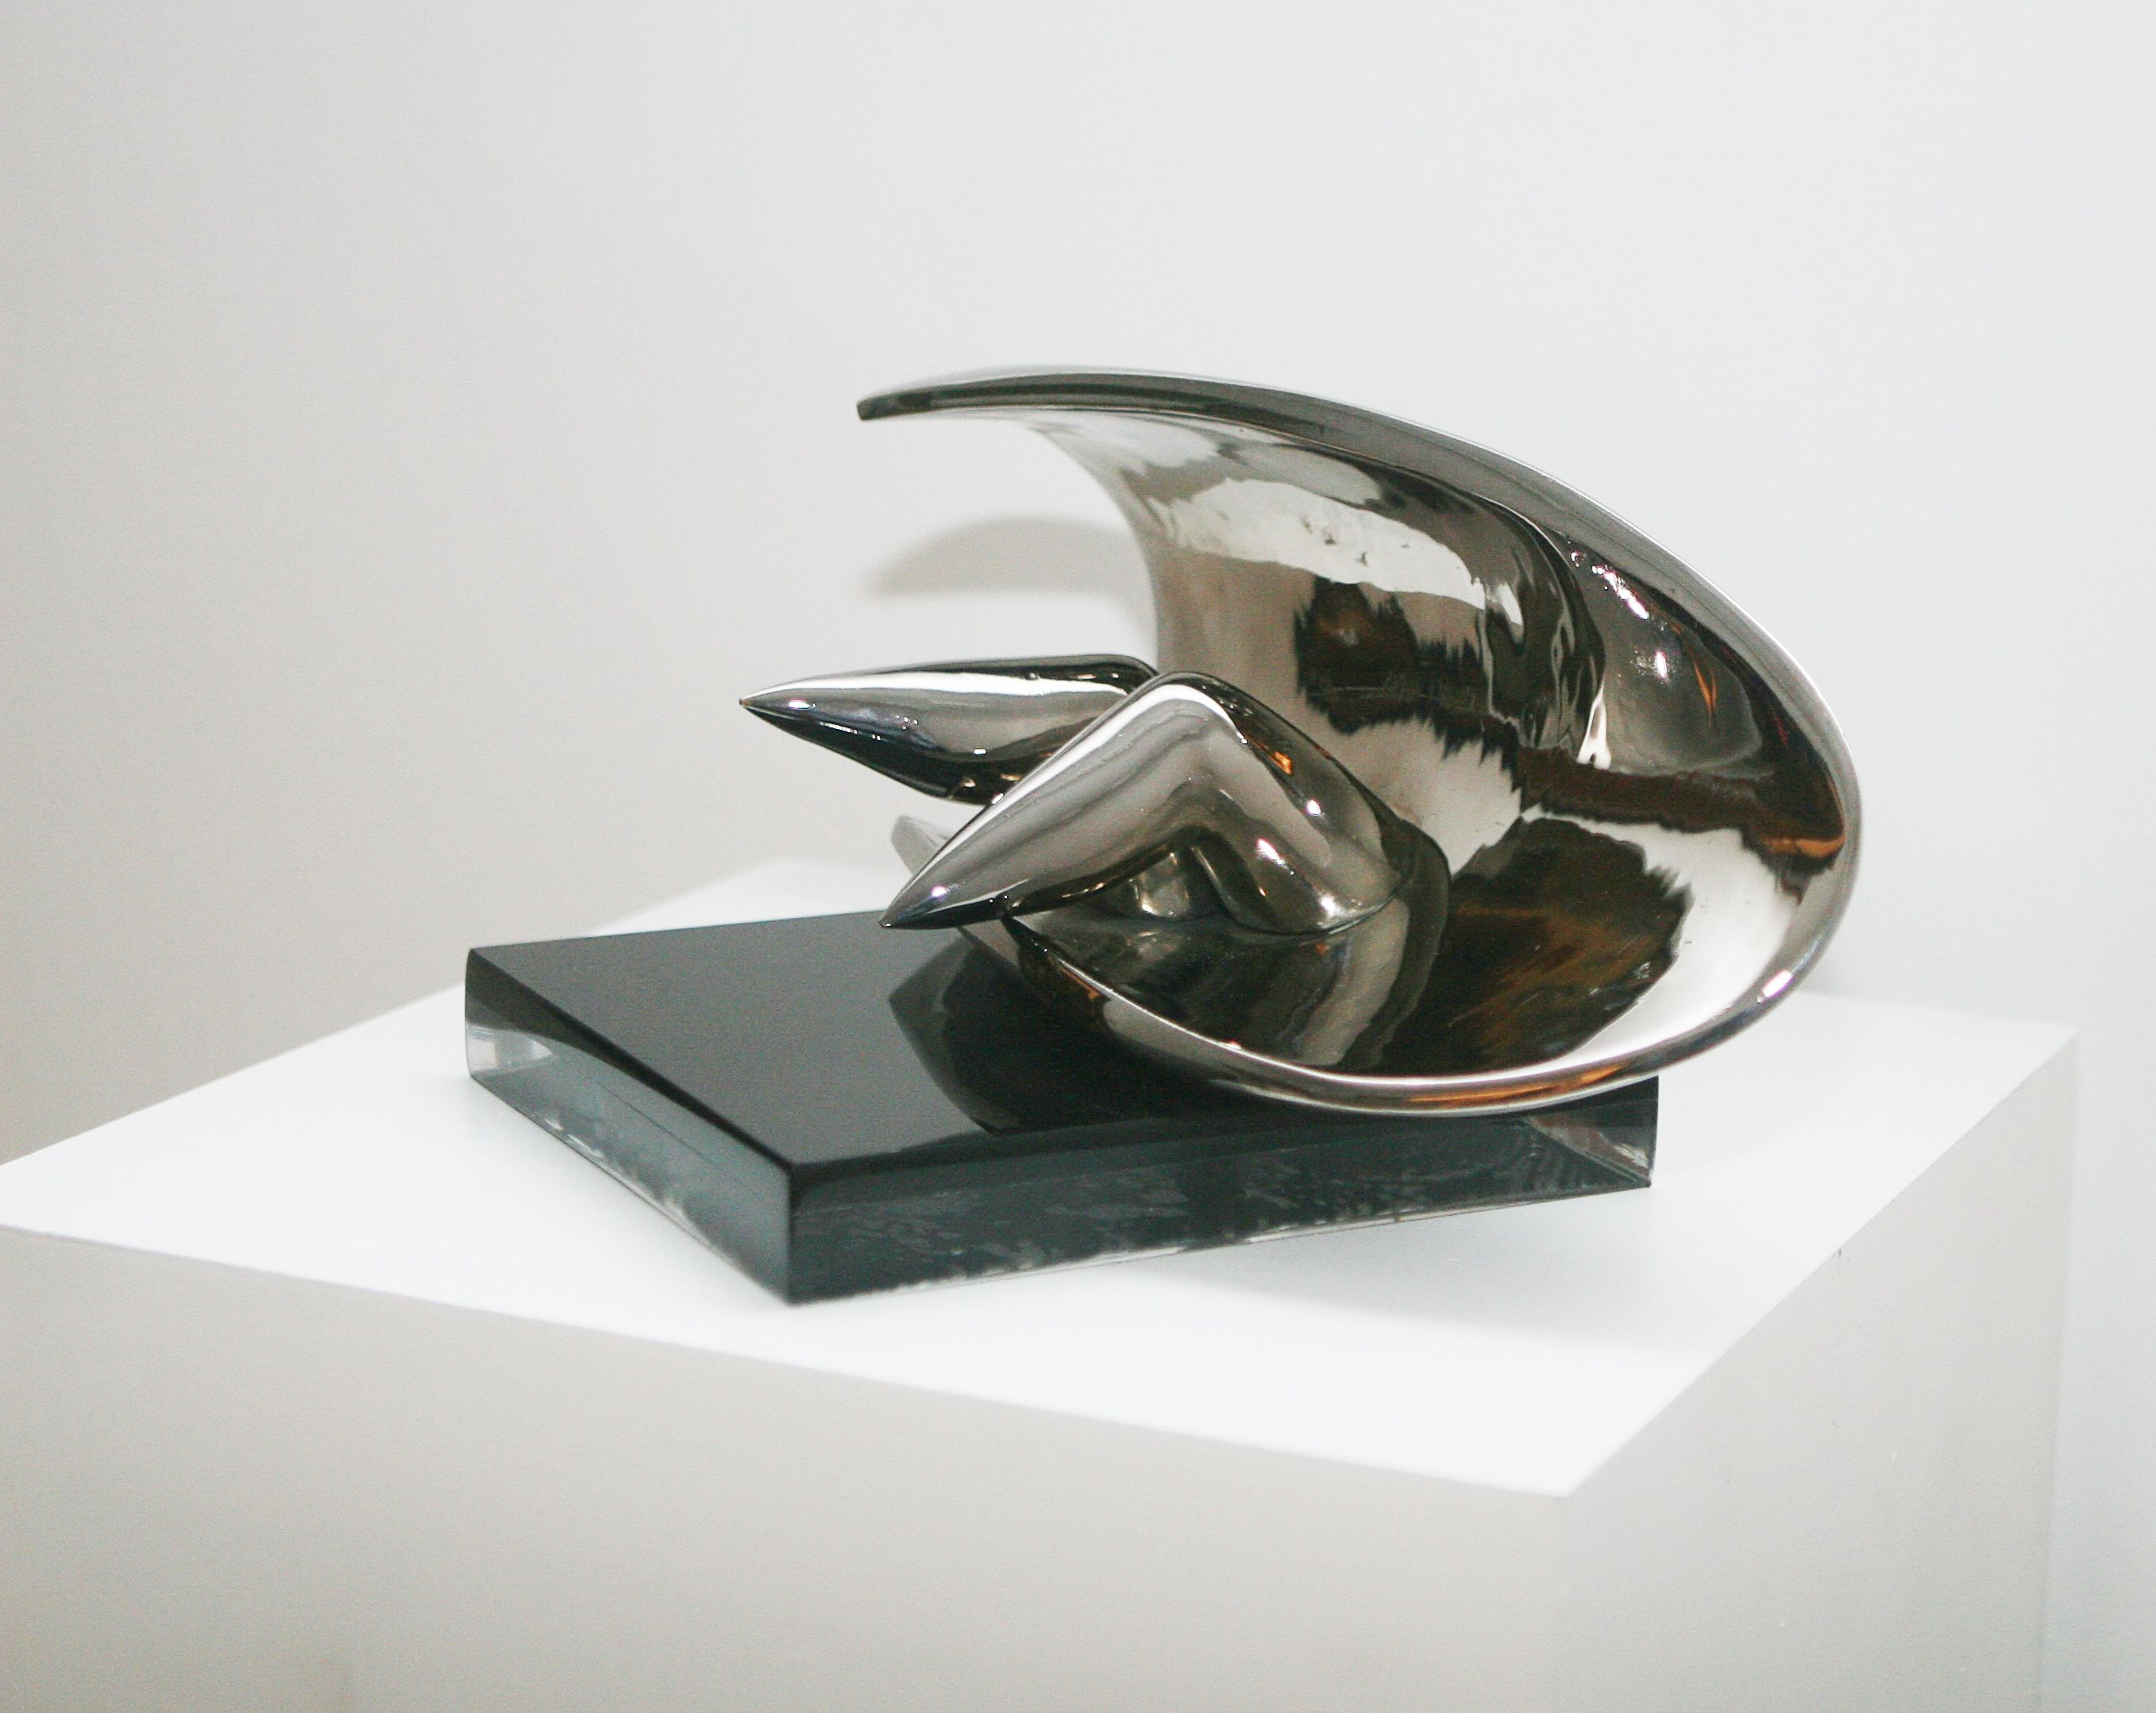 Nagi Farid Tadros Dream 15 cm Bronze plated nickel